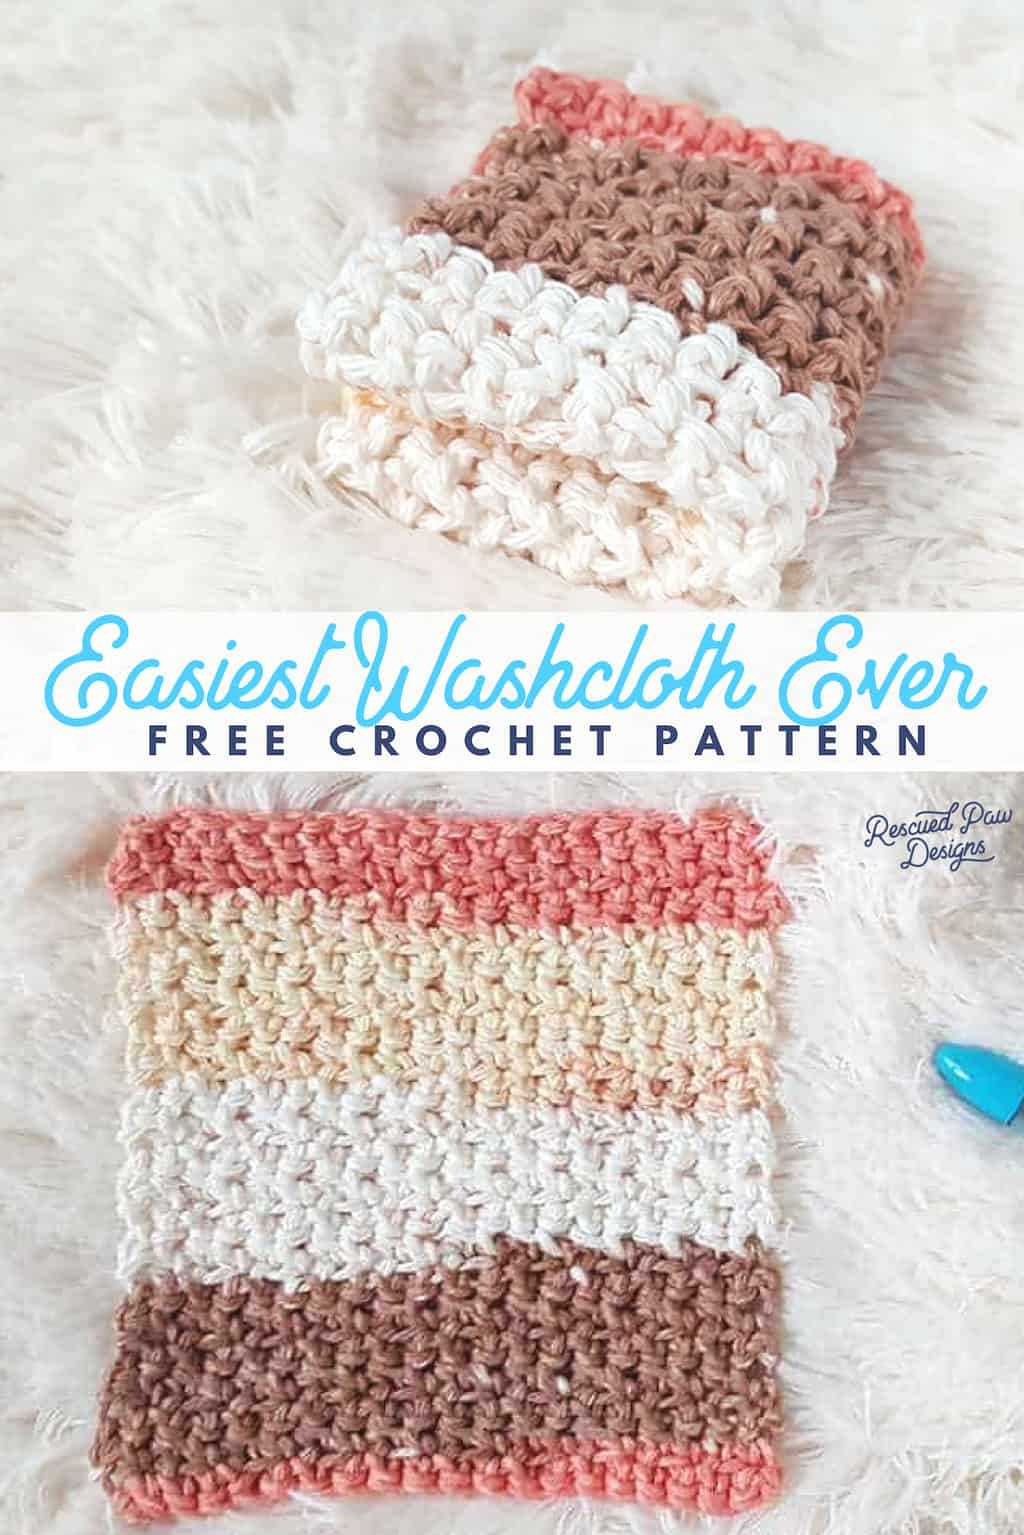 Easiest Crochet WashCloth Pattern